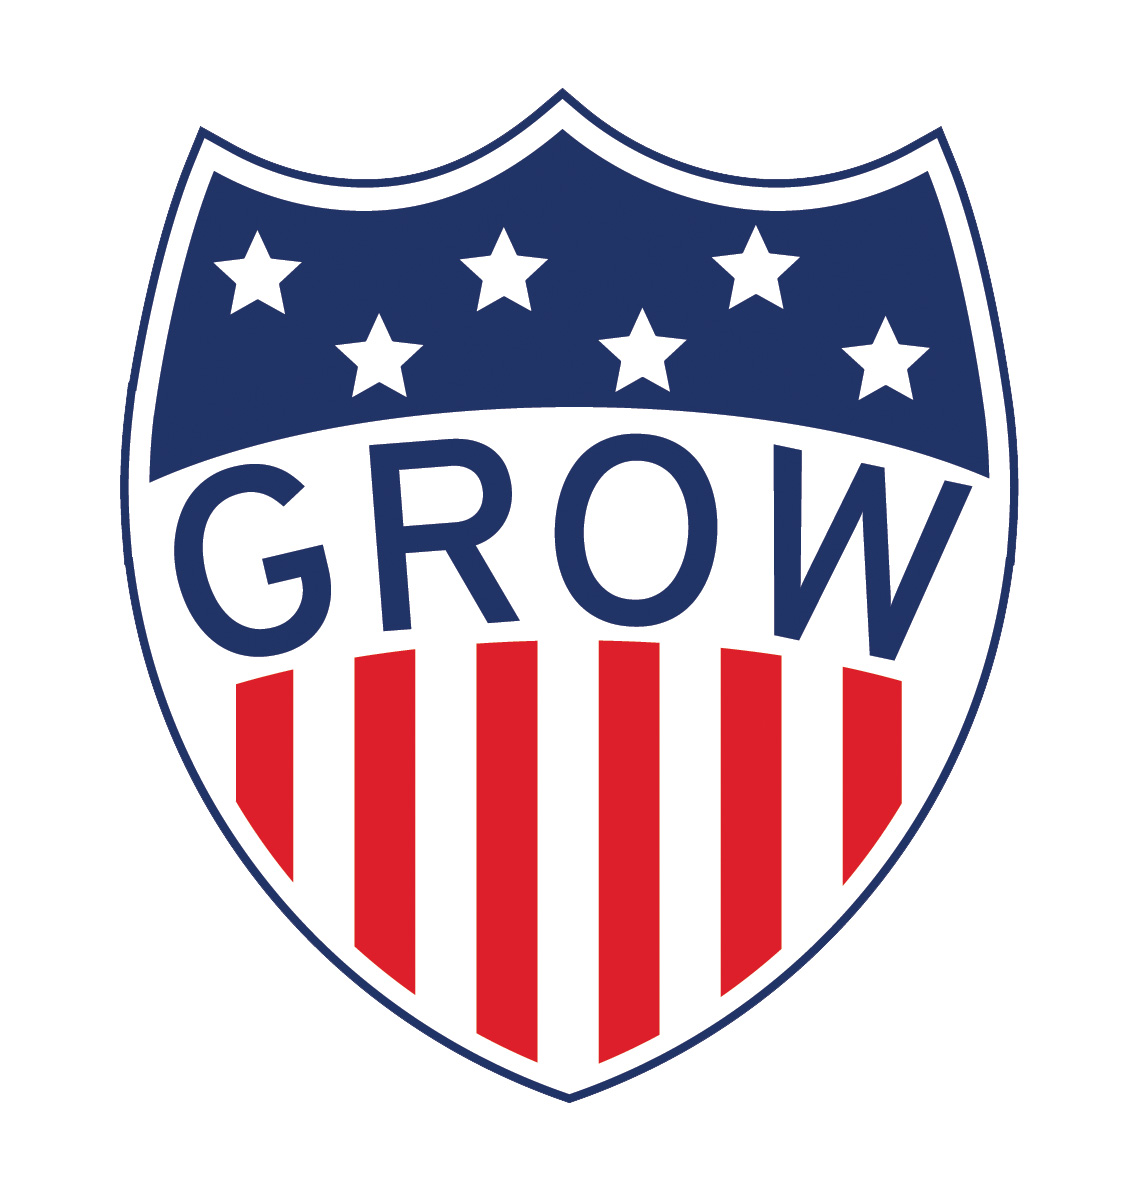 Grow America shield